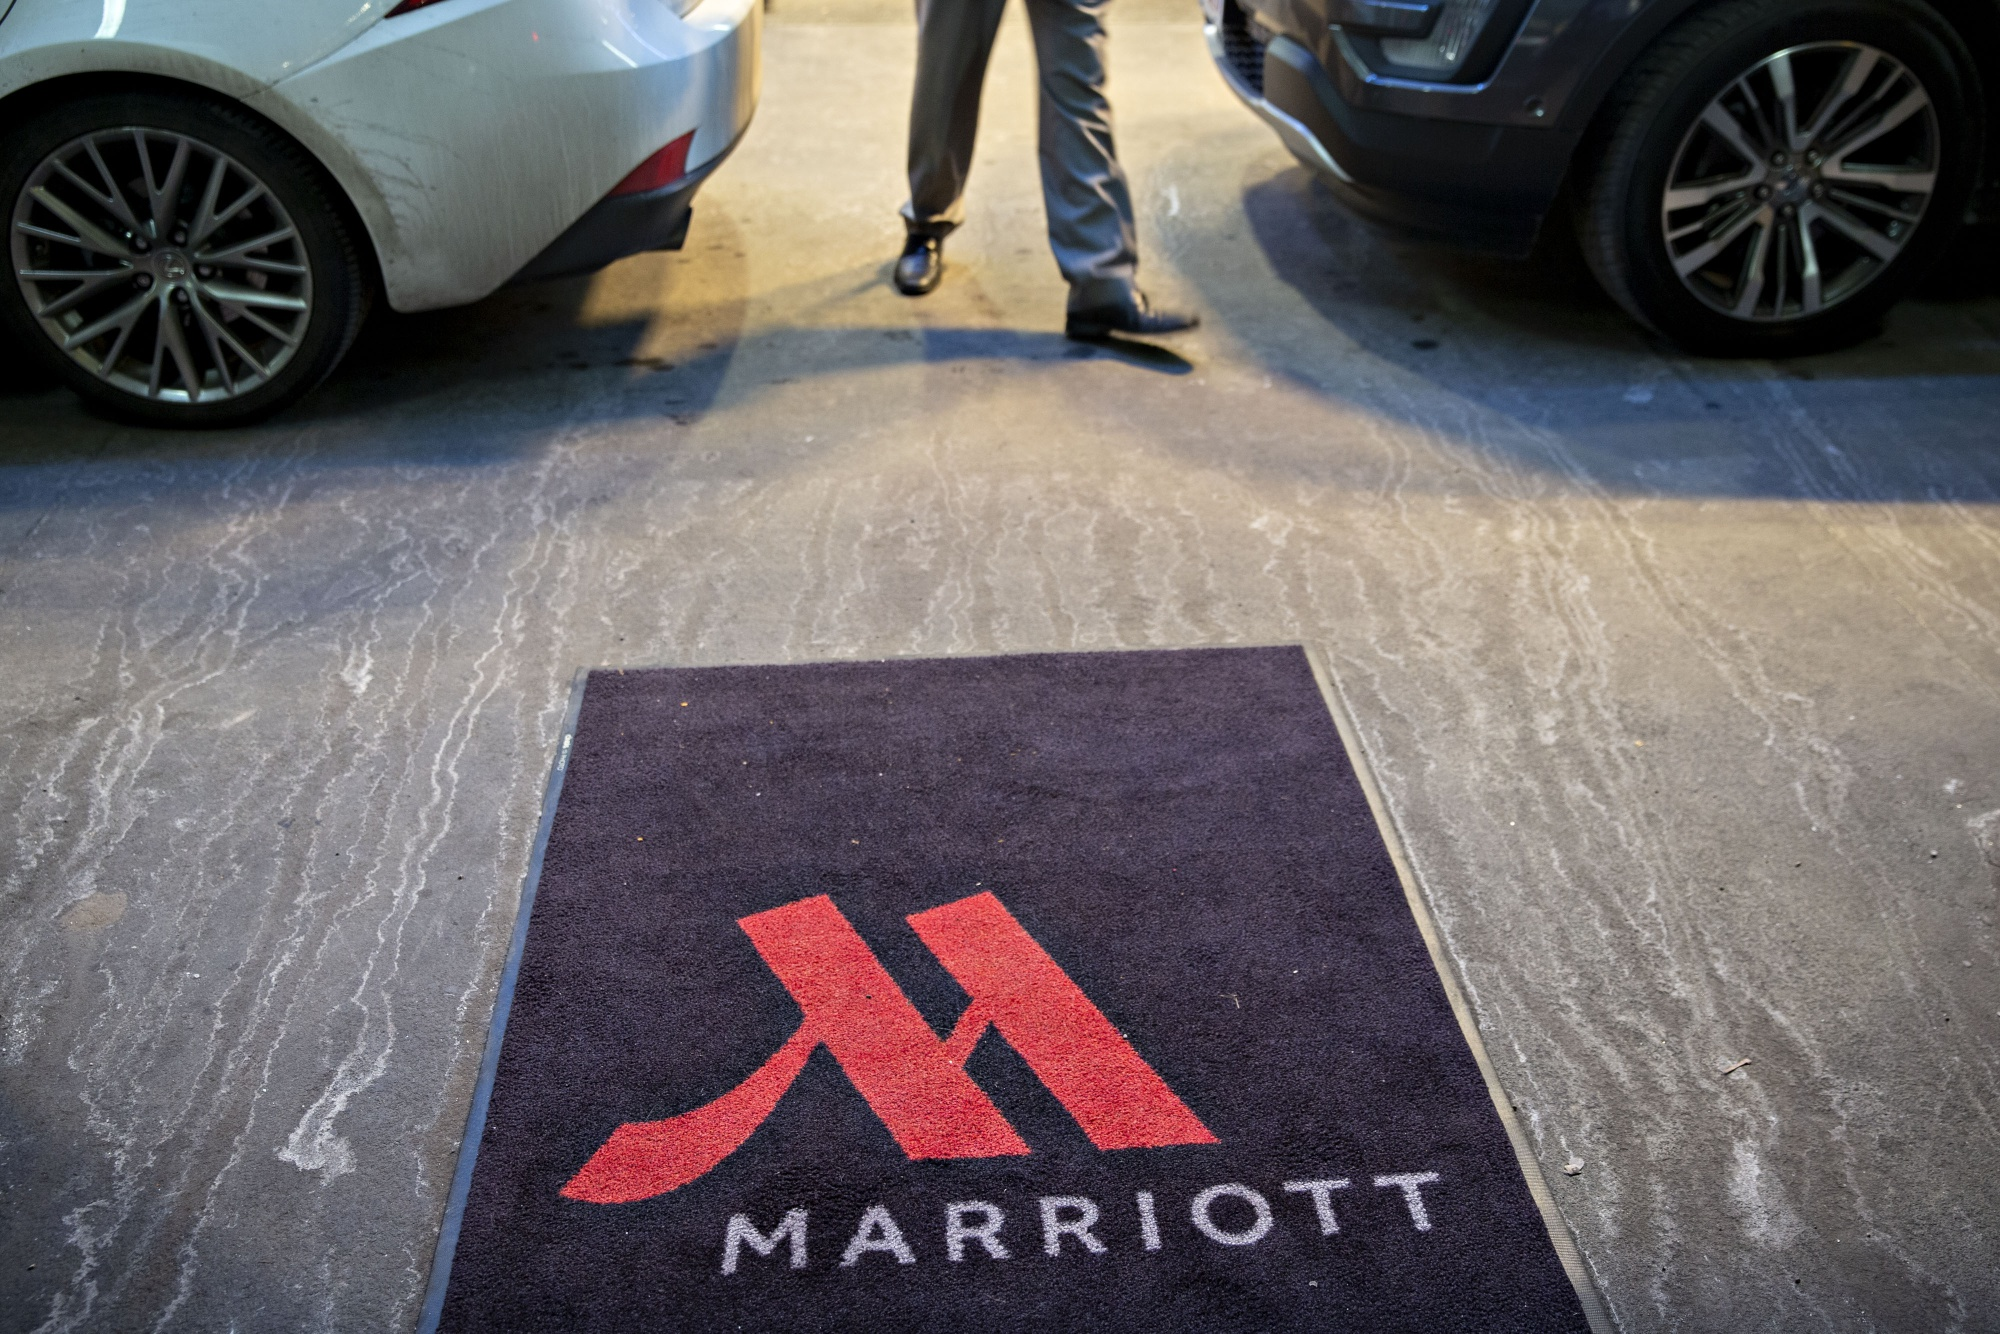 Marriott dives into home-rental market to keep an edge on Airbnb